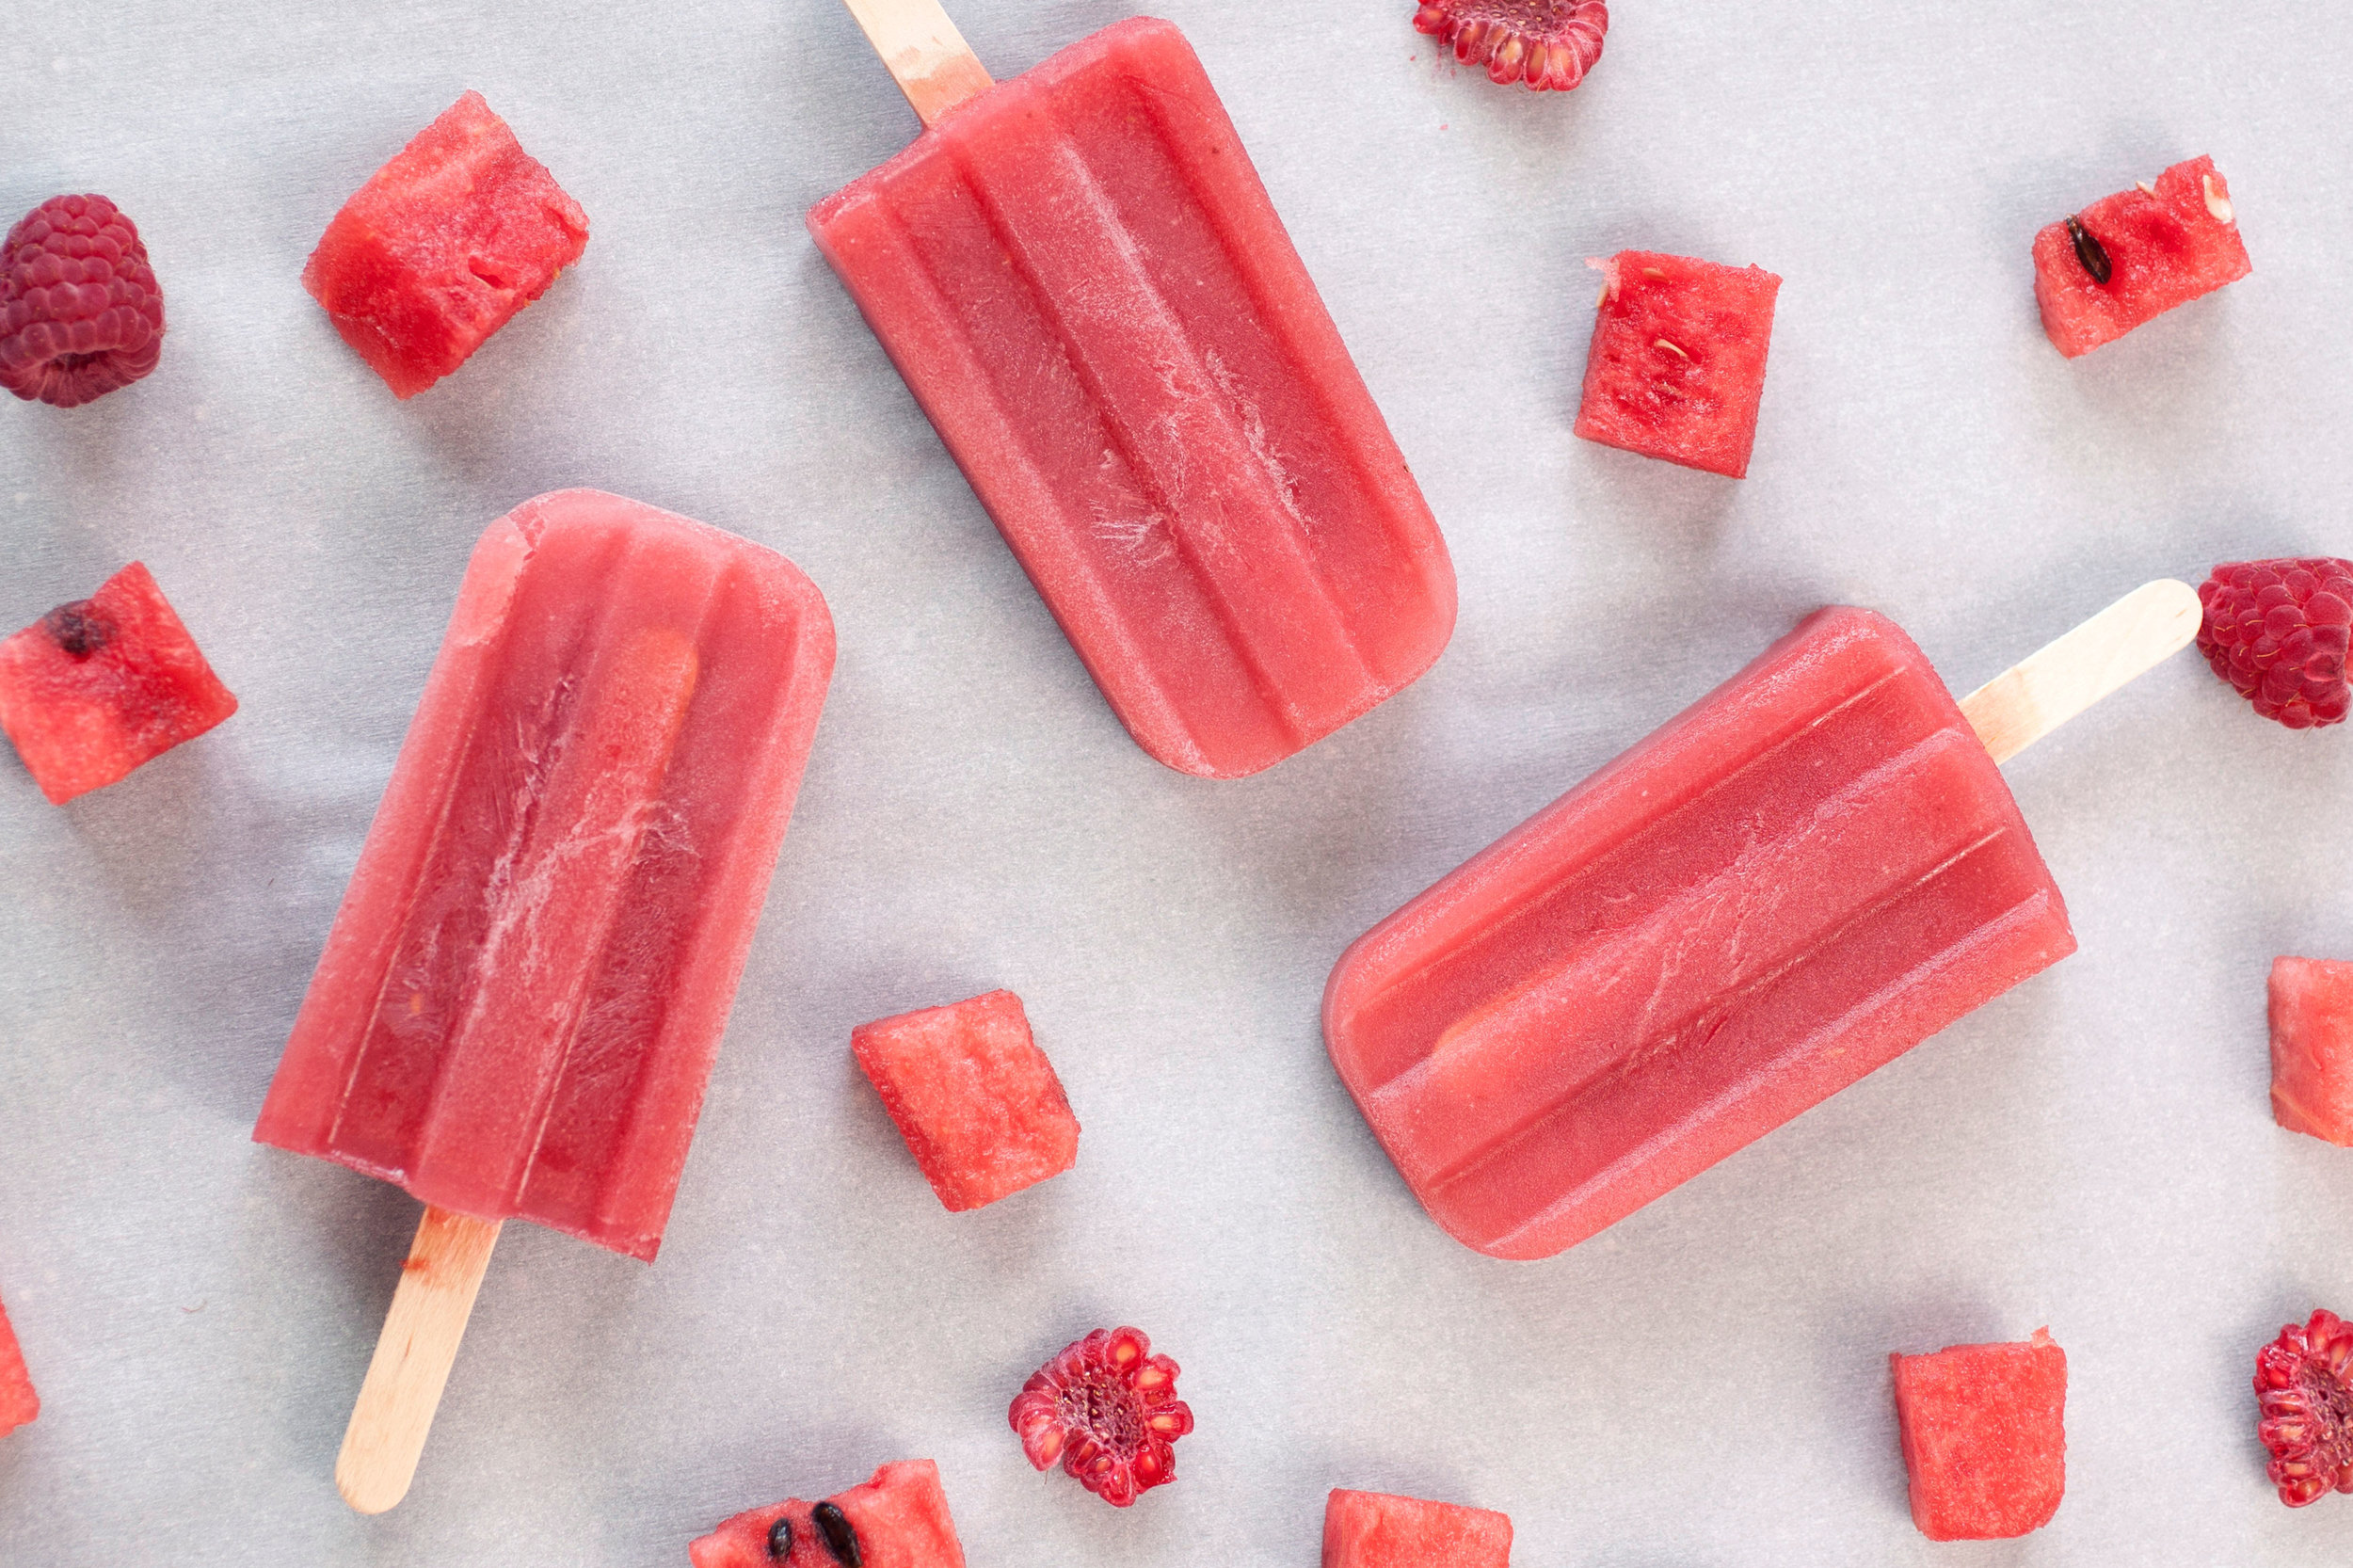 Watermelon-Raspberry-Popsicle_MG_1329_sRGB.jpg